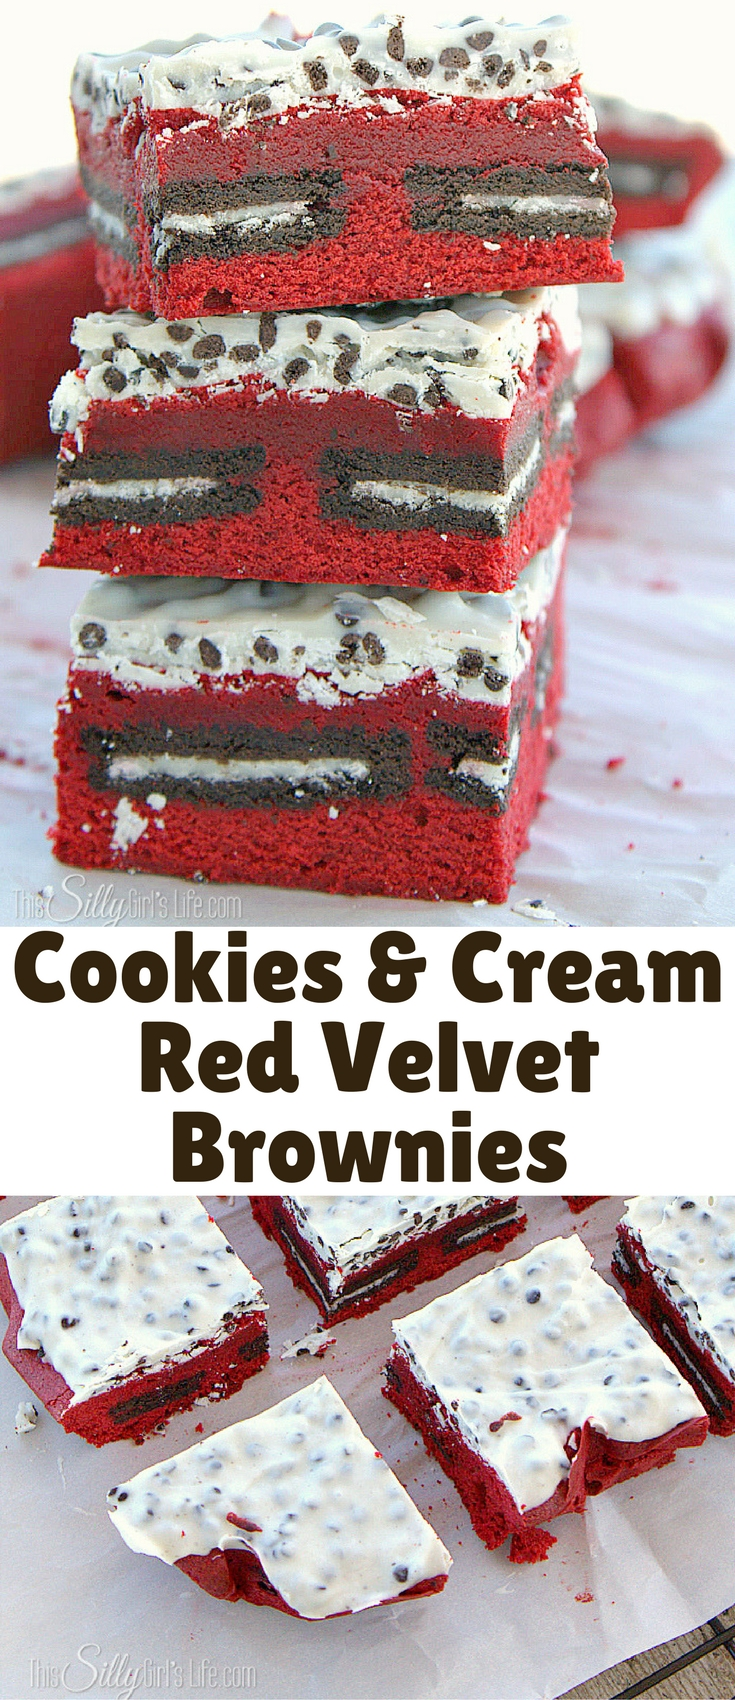 Cookies and Cream Red Velvet Brownies, Oreo stuffed homemade red velvet brownies, topped with cookies and cream kisses!